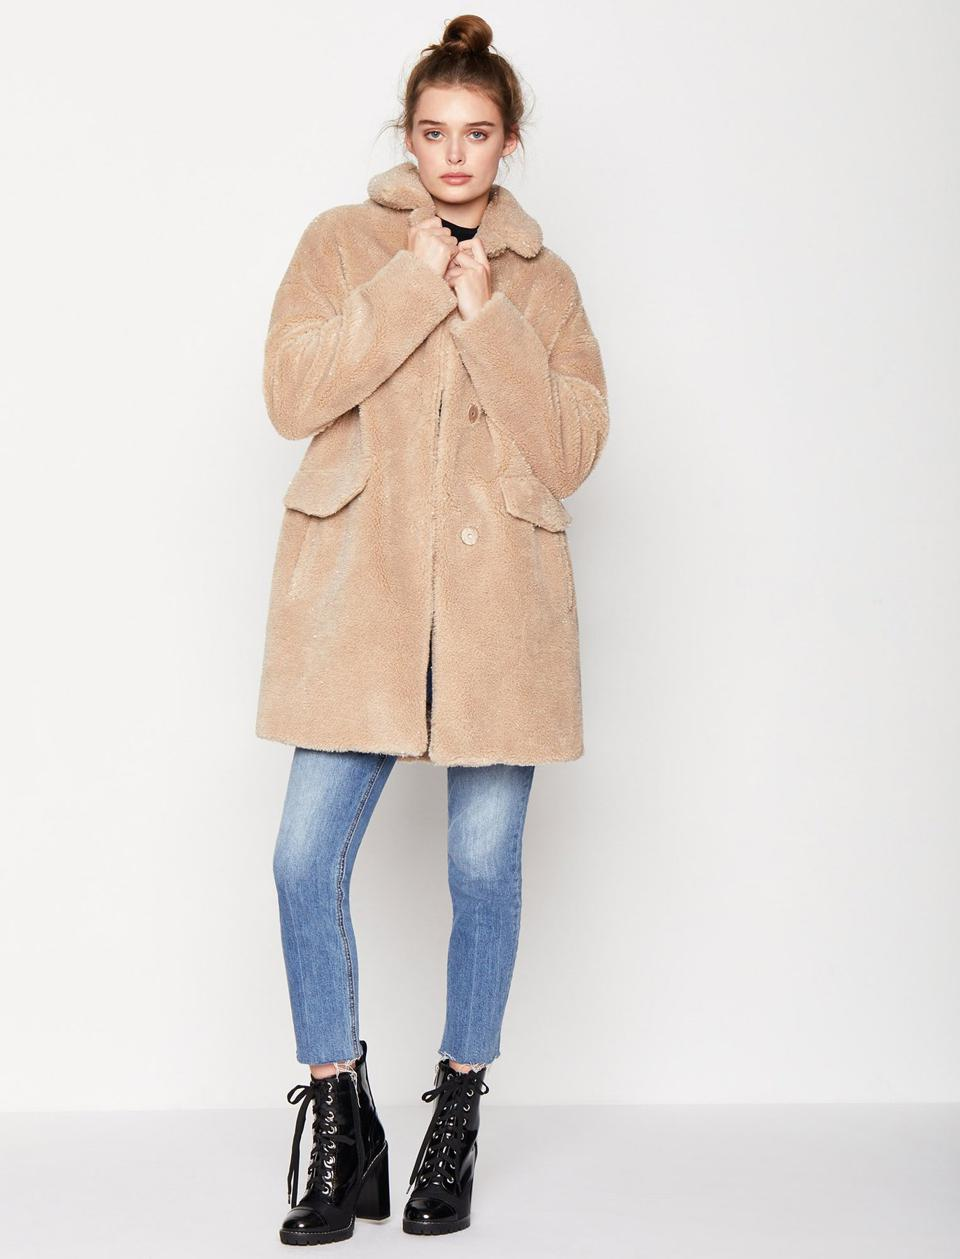 BCBGeneration's Oversized Faux Fur Coat in the color Cream Lurex is 100% polyester, an oversized silhouette and finished with two front pockets.